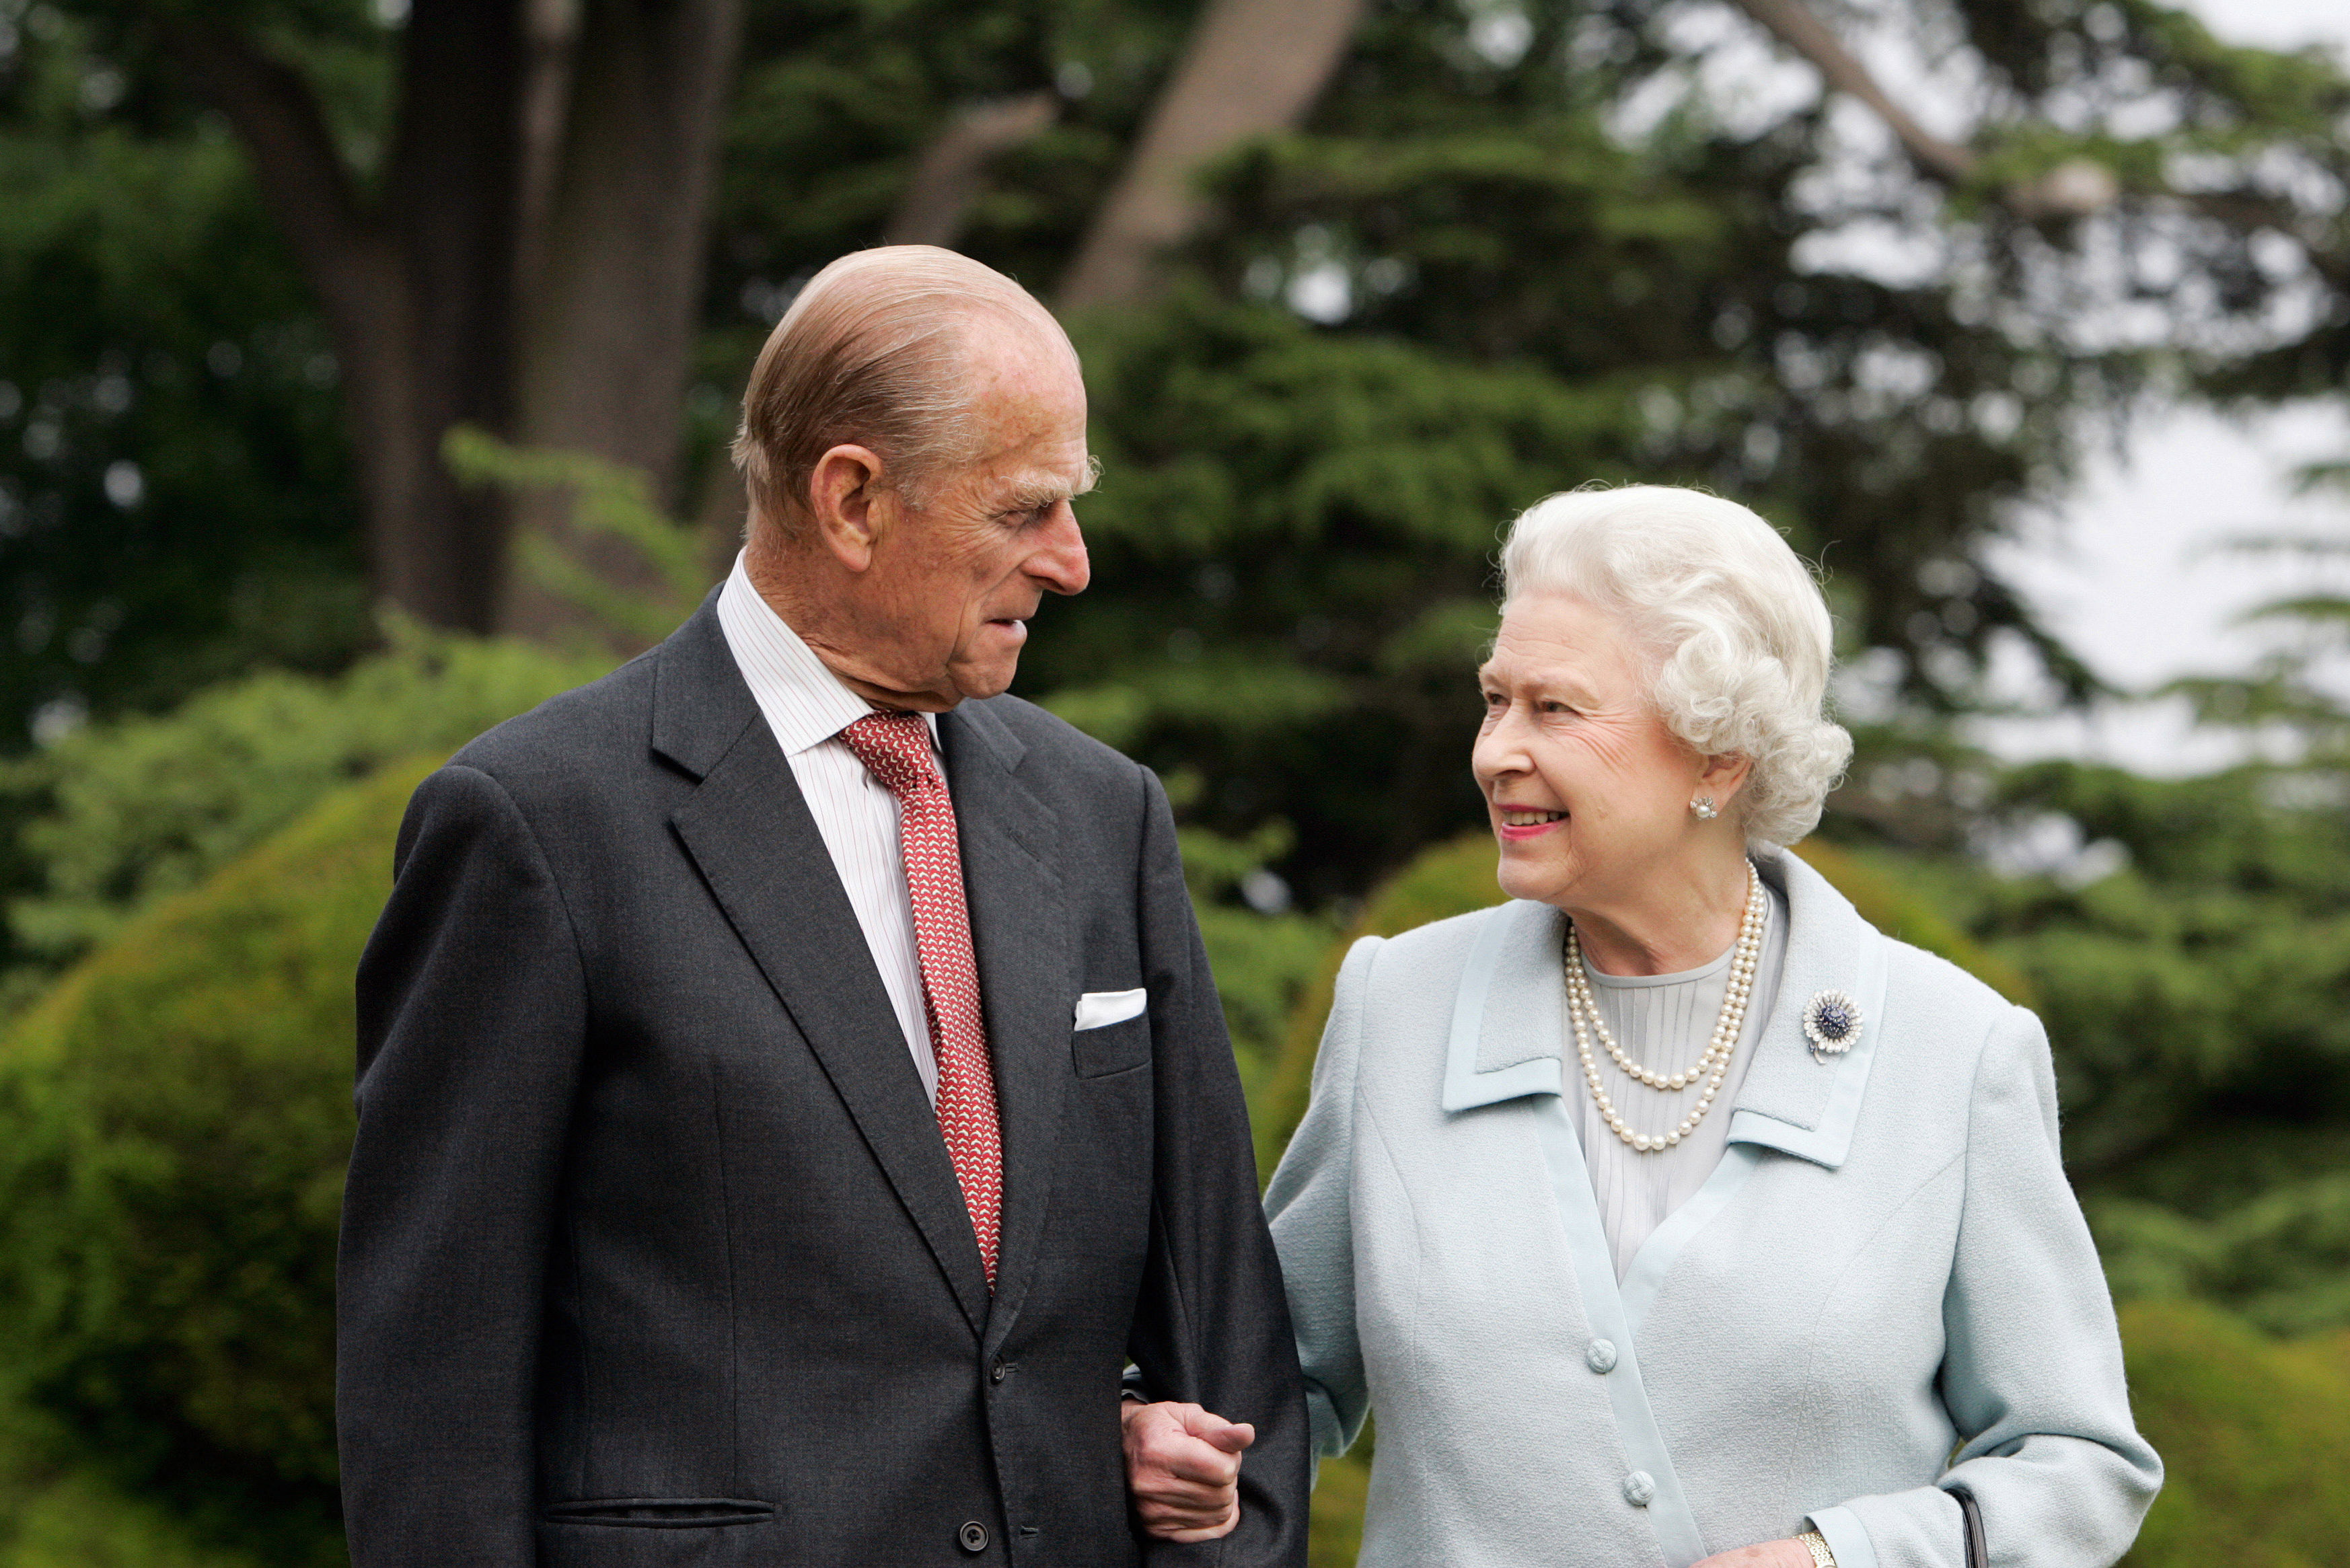 WATCH: You Will Never Guess Prince Philip's Adorable Pet Name for Queen Elizabeth